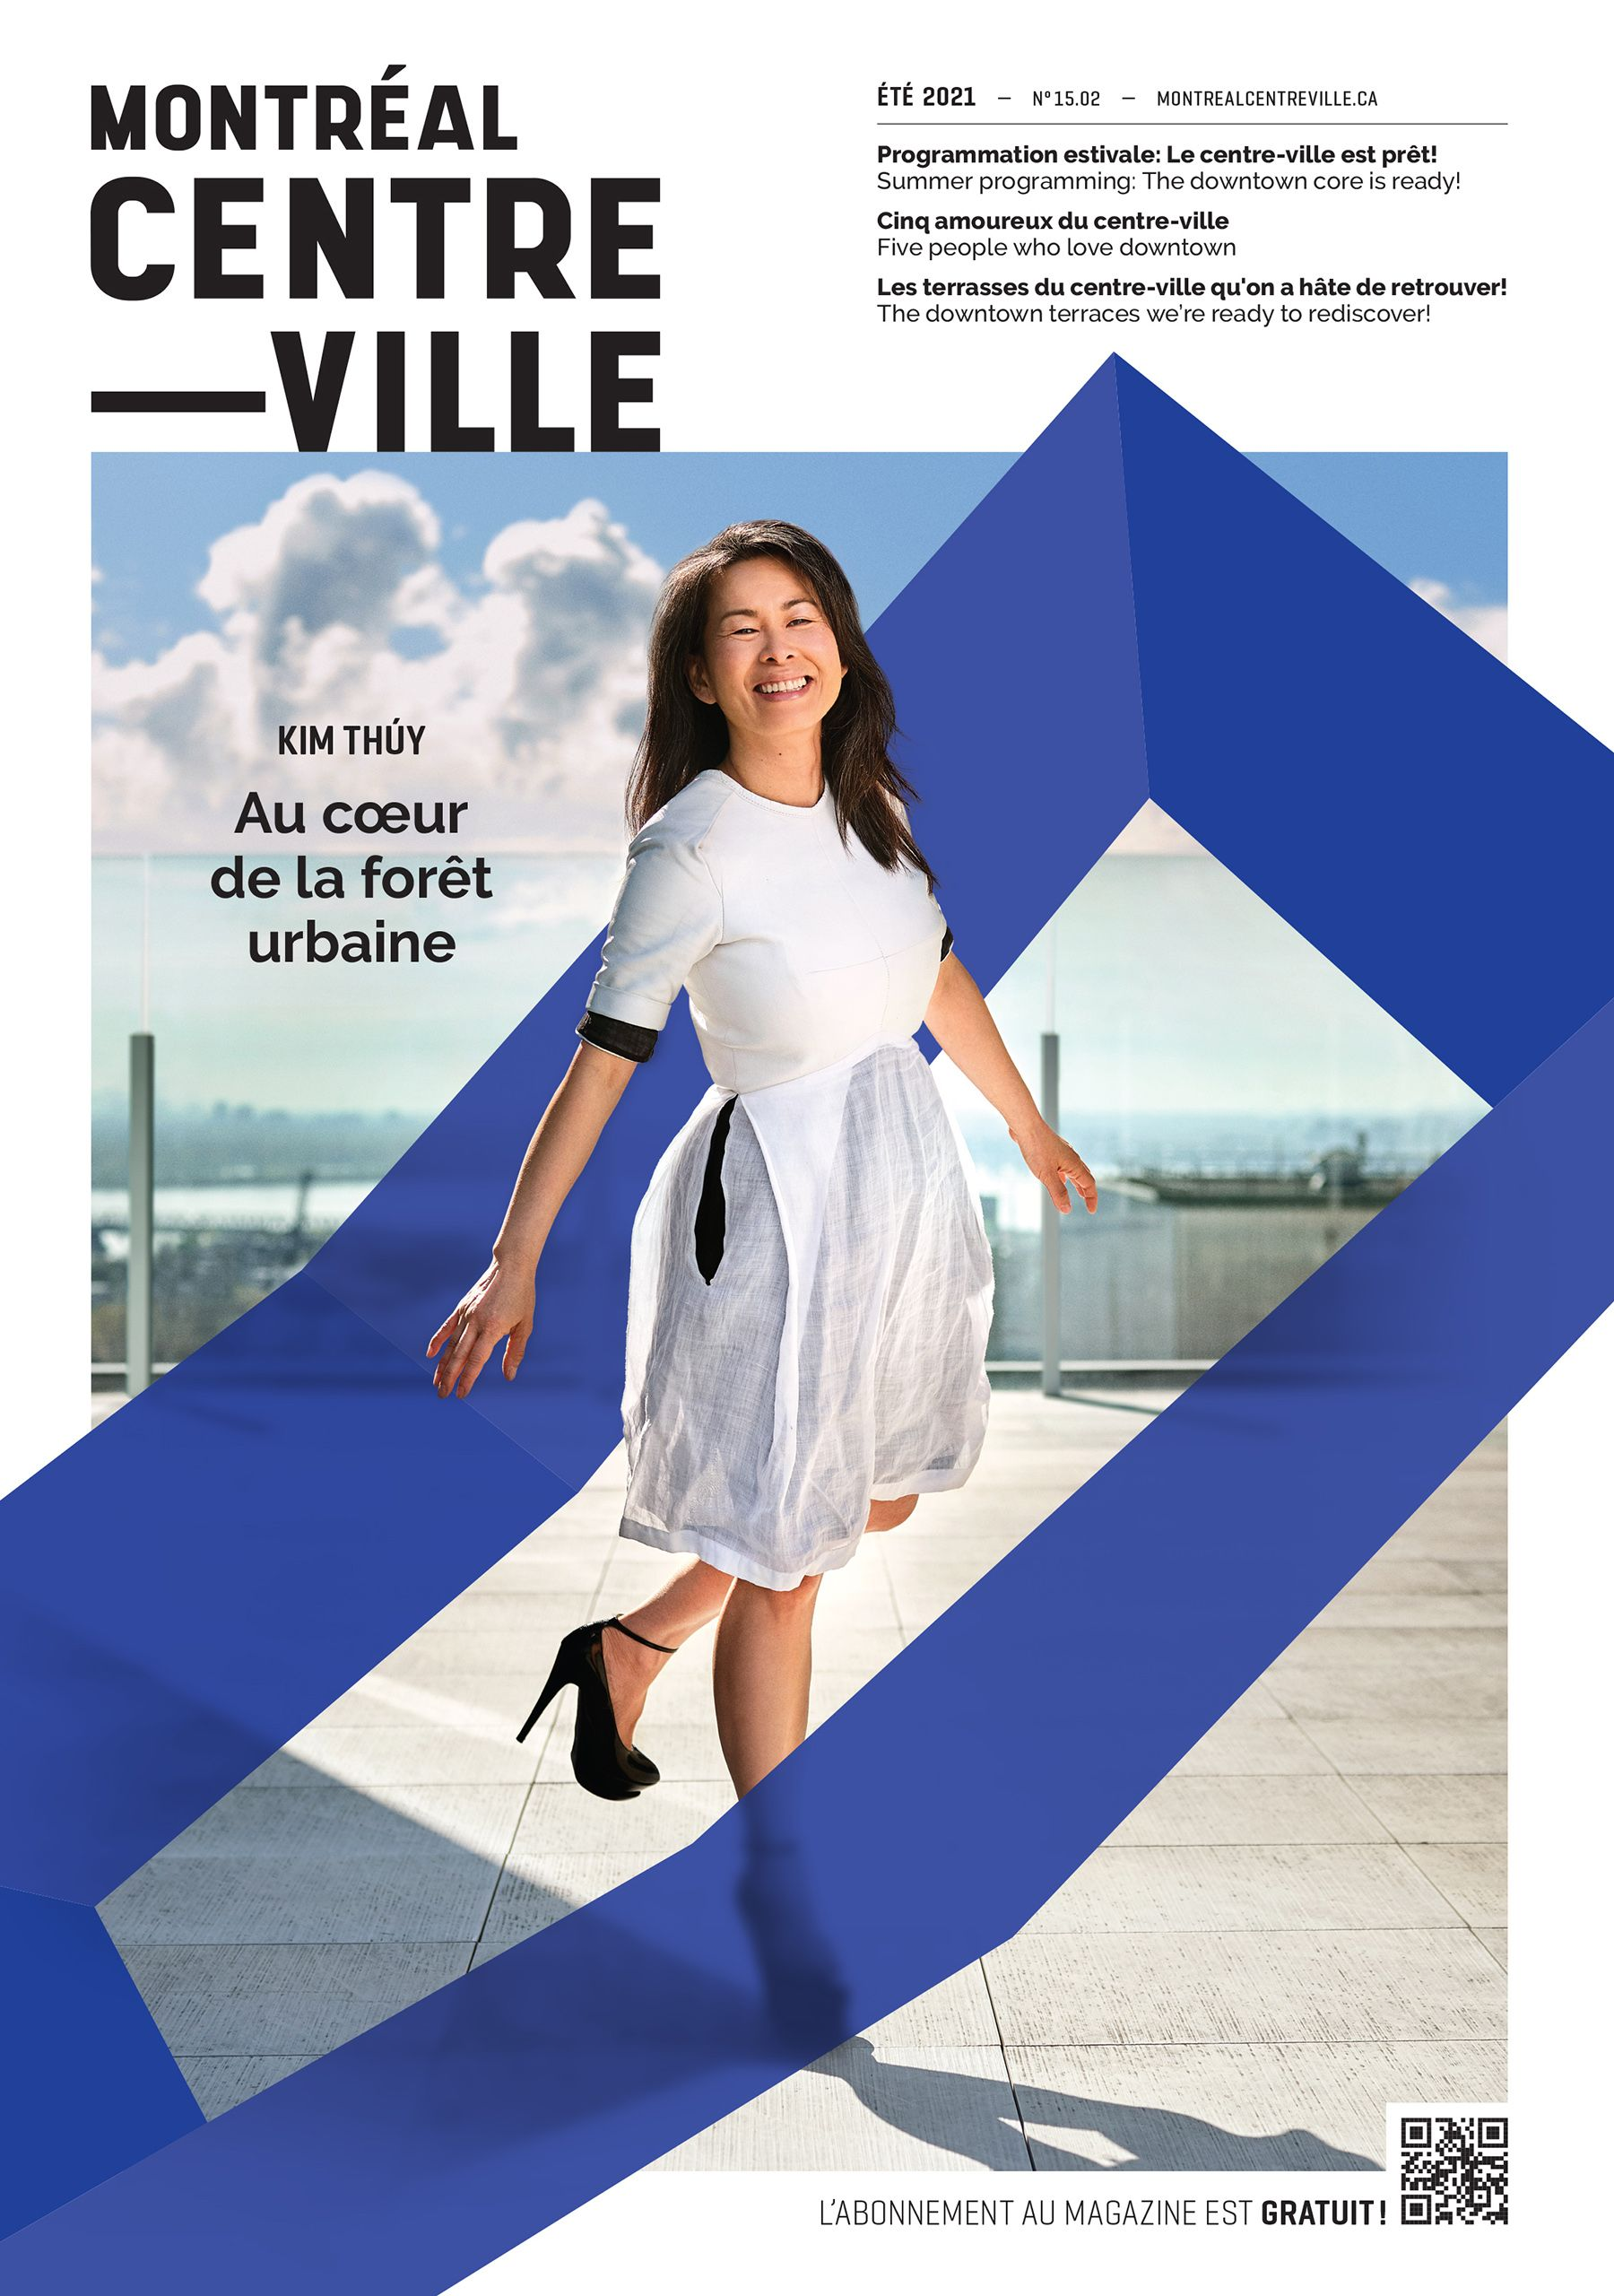 Coverpage of Downtown Montreal magazine with Kim Thuy jumping in a white dress with black stiletto heels on a rooftop in the daytime.